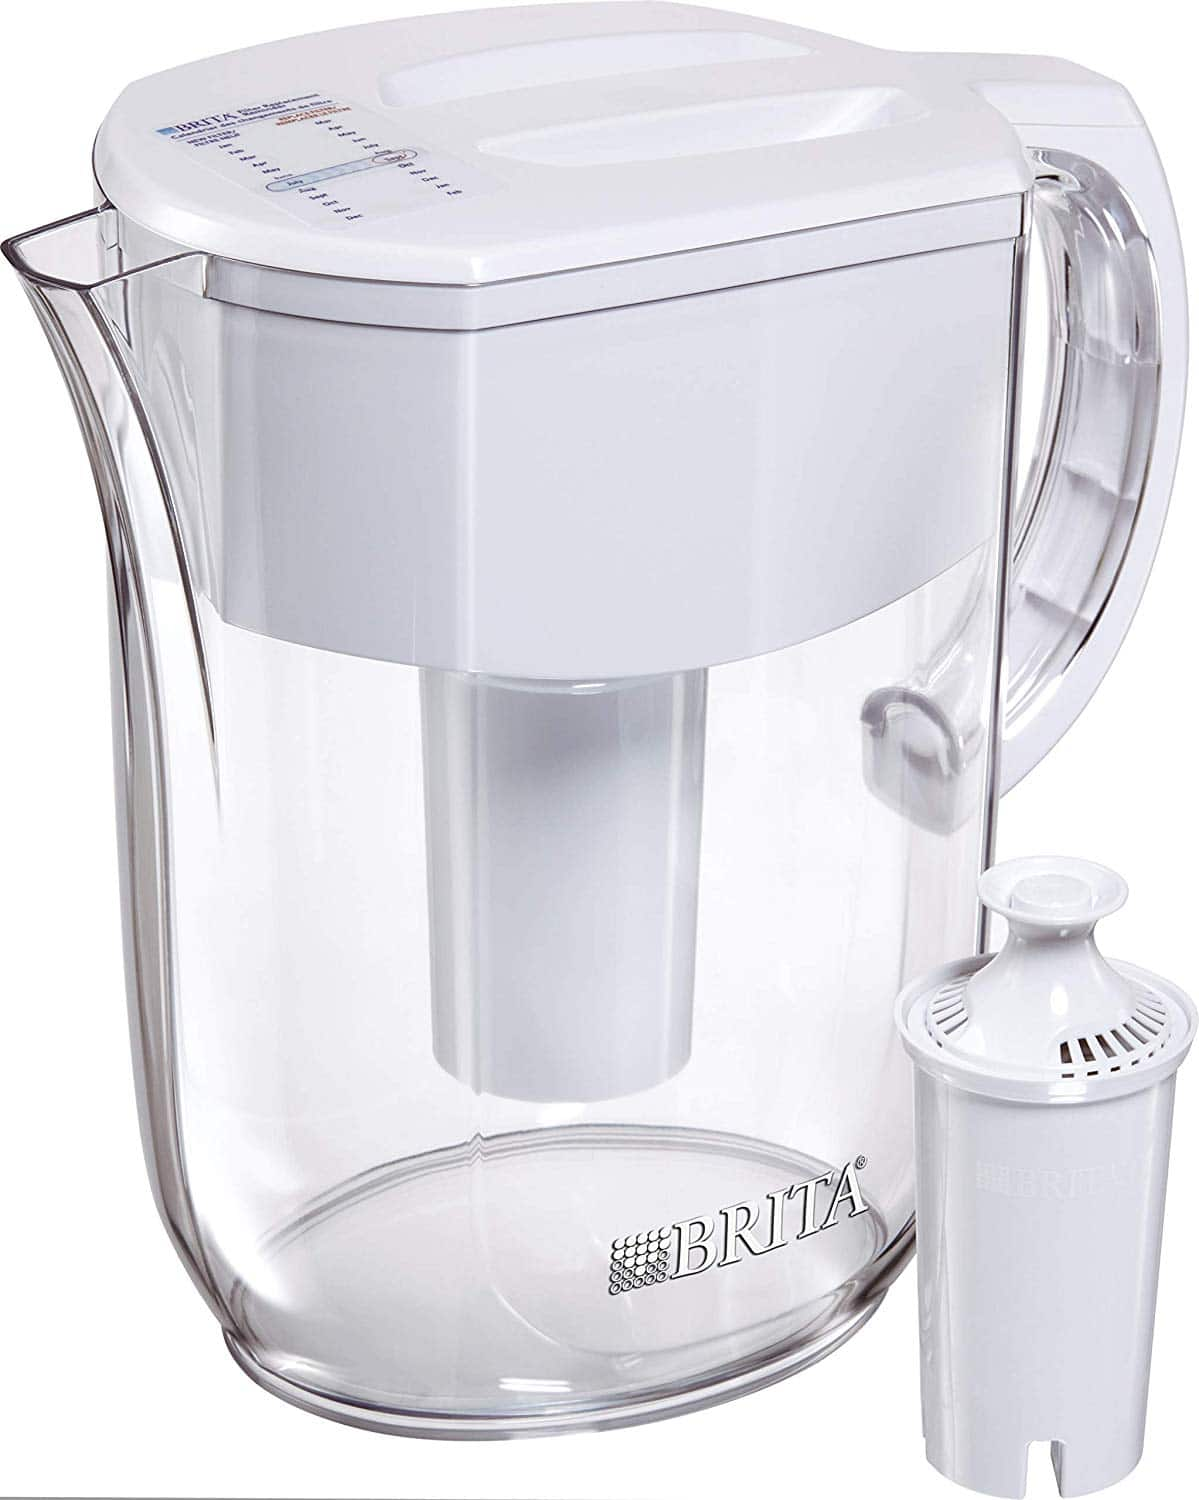 Brita Everyday Pitcher with Filters